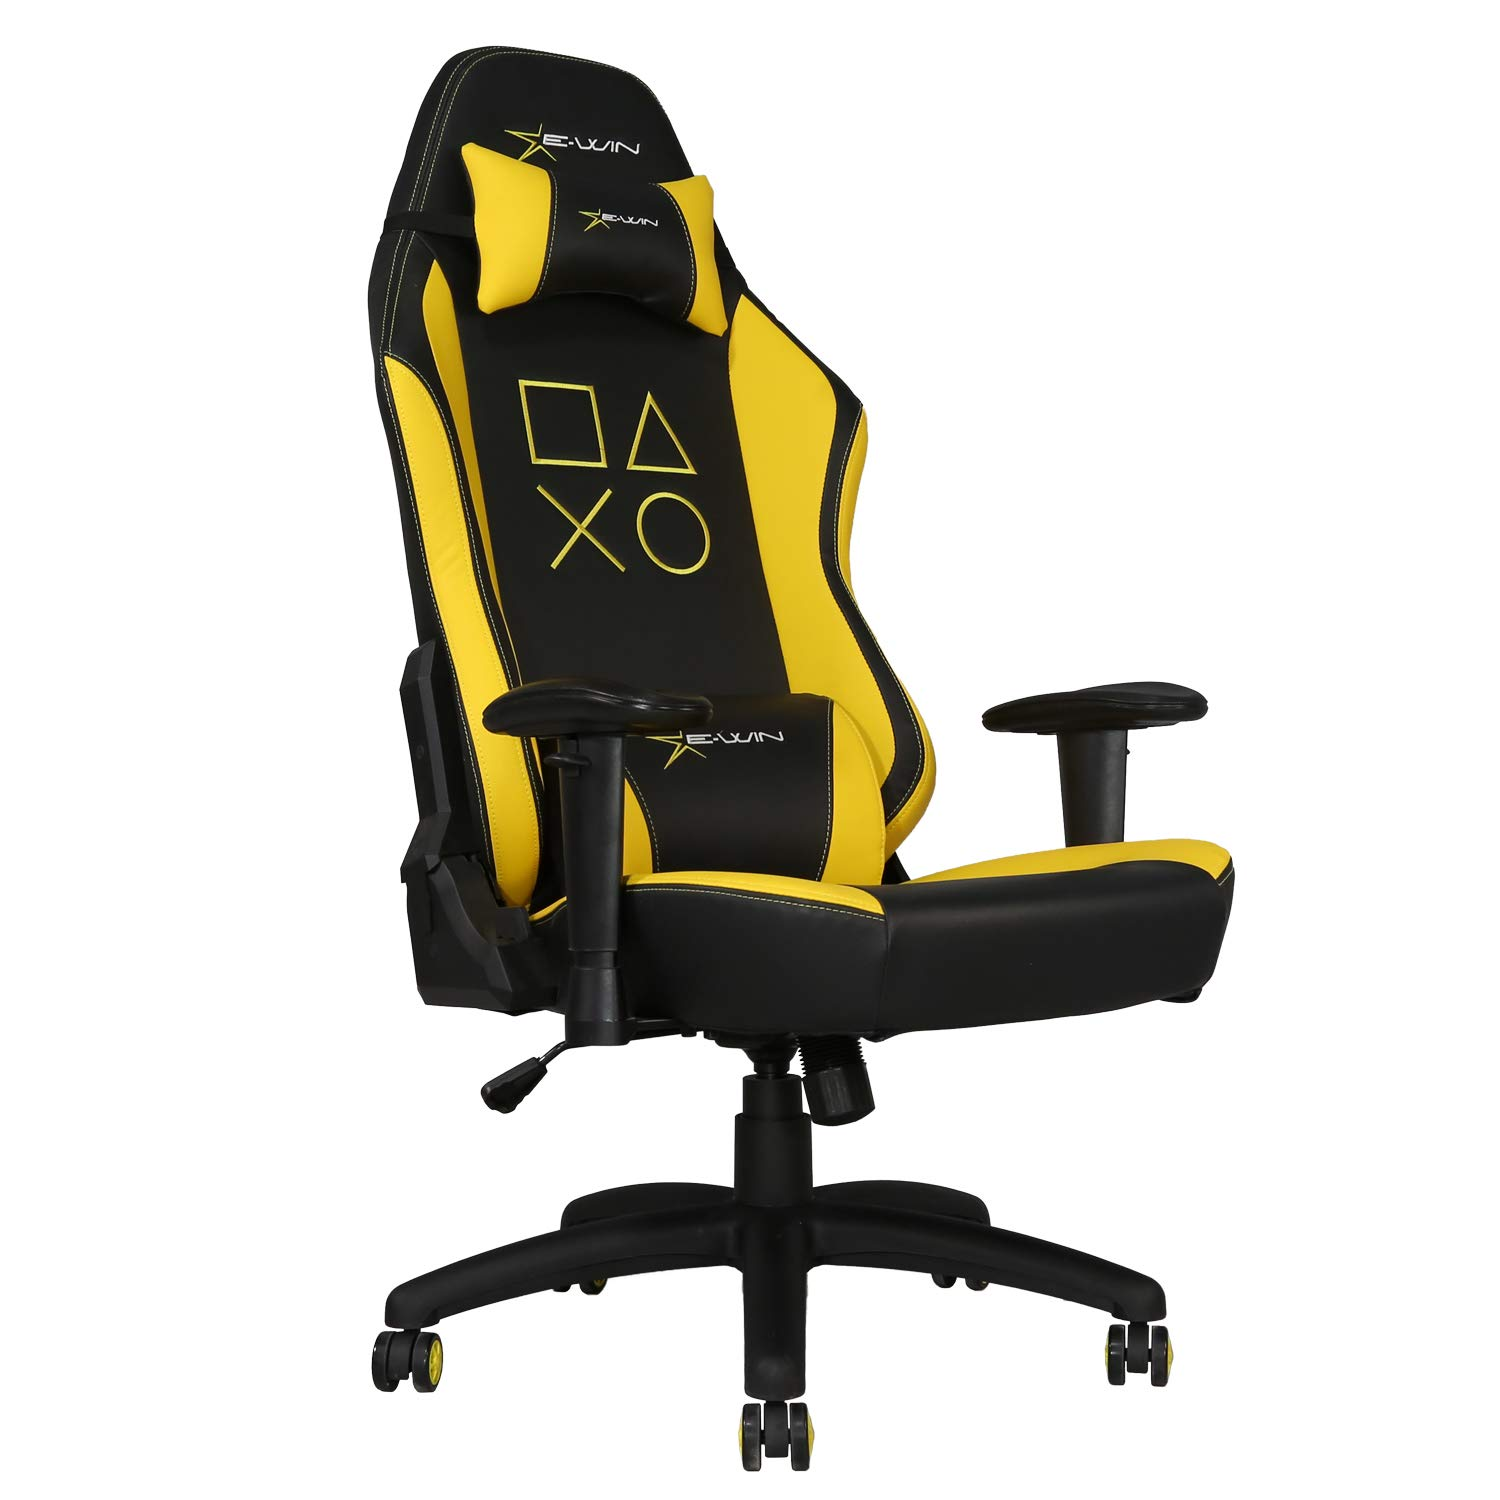 E-WIN Gaming 400 lb Big and Tall Office Chair,Ergonomic Racing Style Design with Wide Seat High Back Adjustable Armrest,Black Yellow